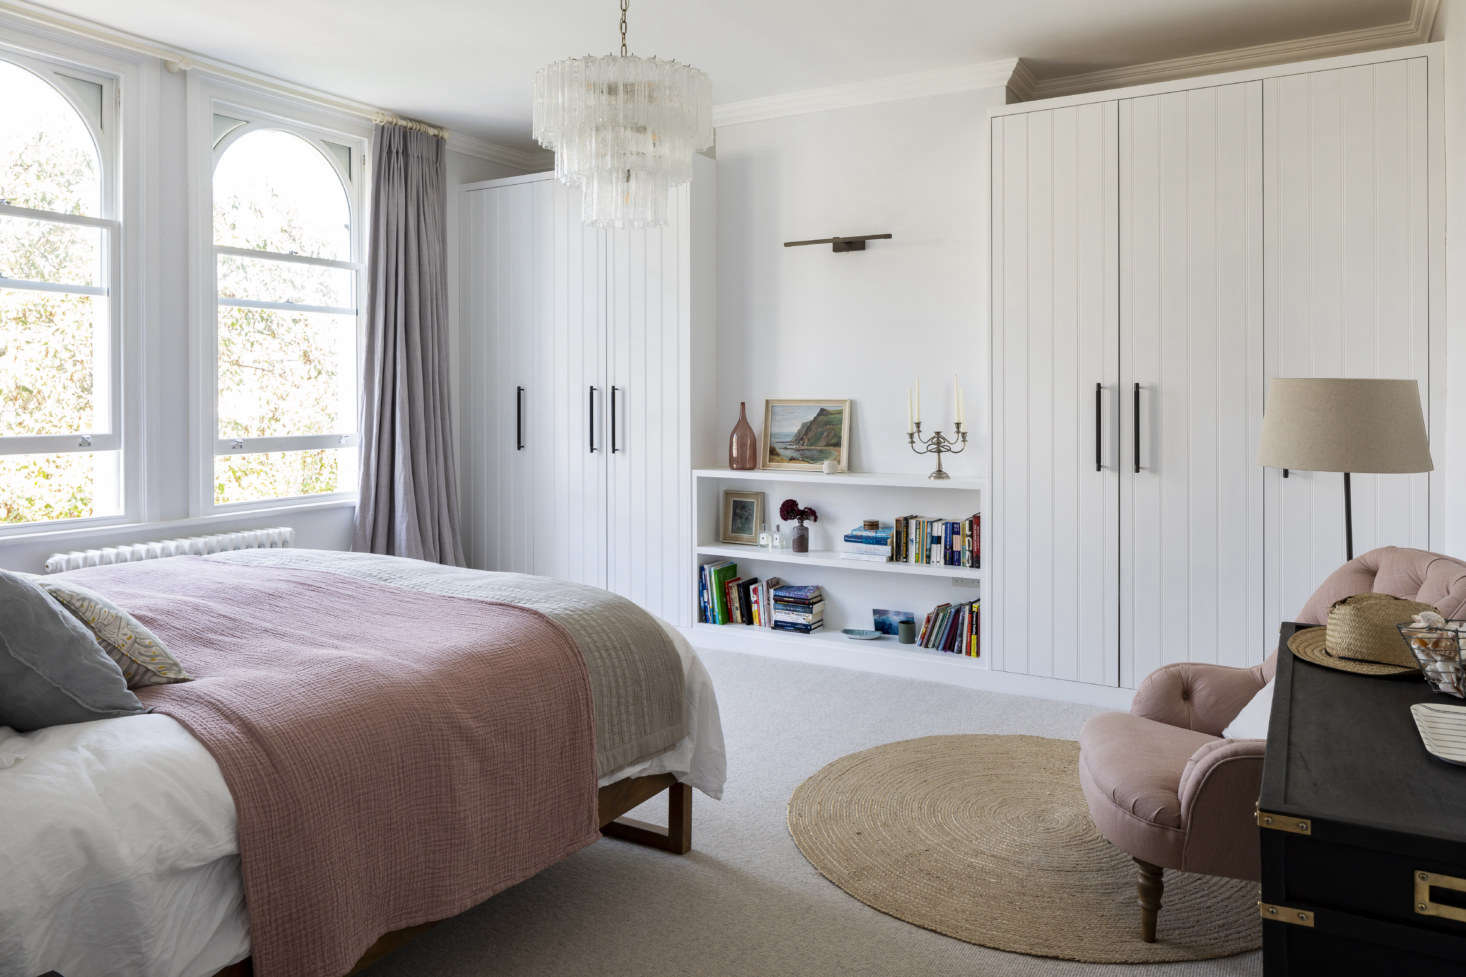 Bedroom in a family house in Barnes, London